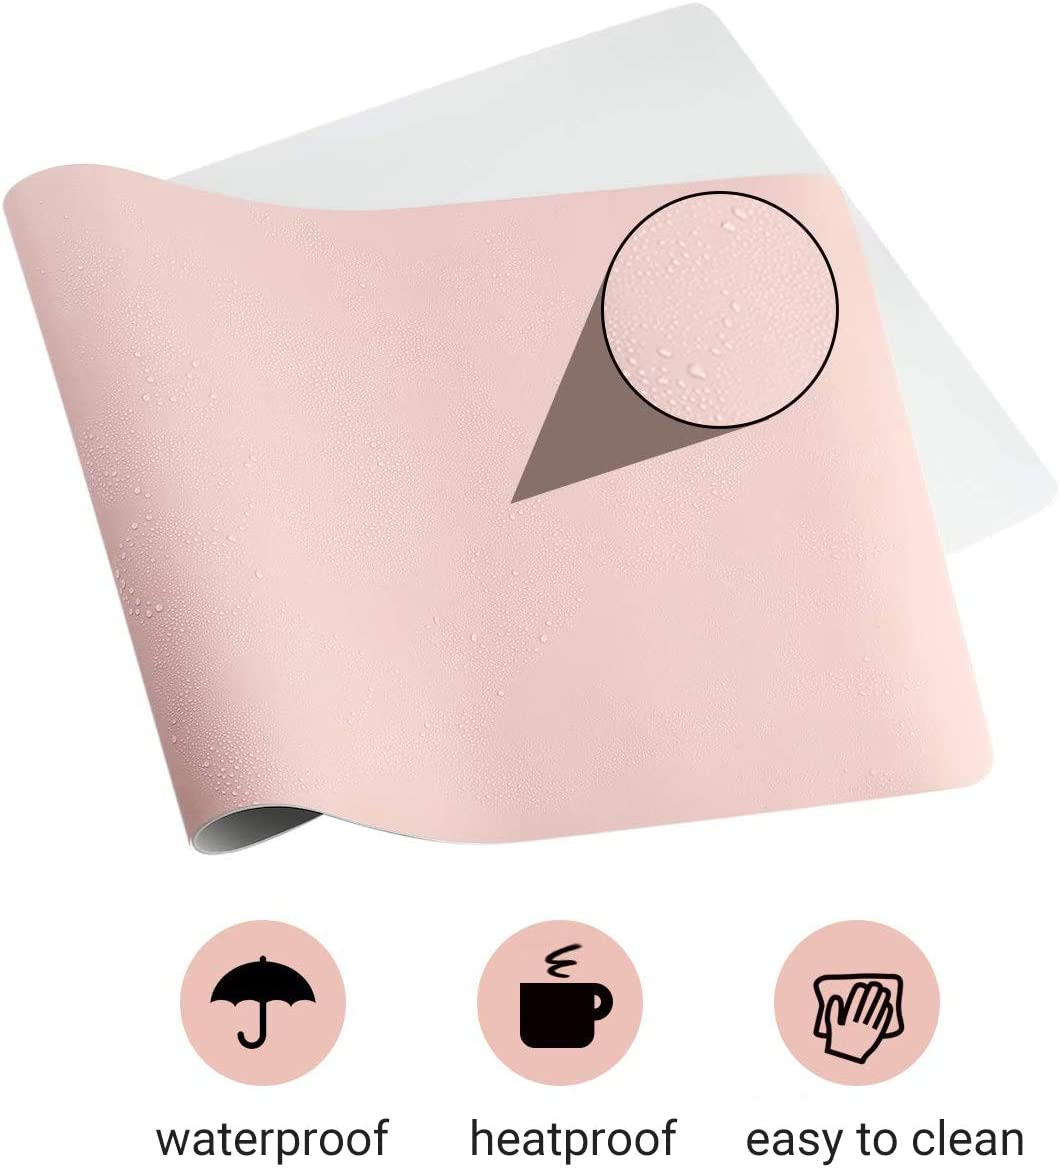 Office Desk Mat Writing Gaming Mouse Pad with Comfortable Writing Surface Waterproof-Pink 140x70cm versionb Pu Leather Desk Blotter 55x28inch